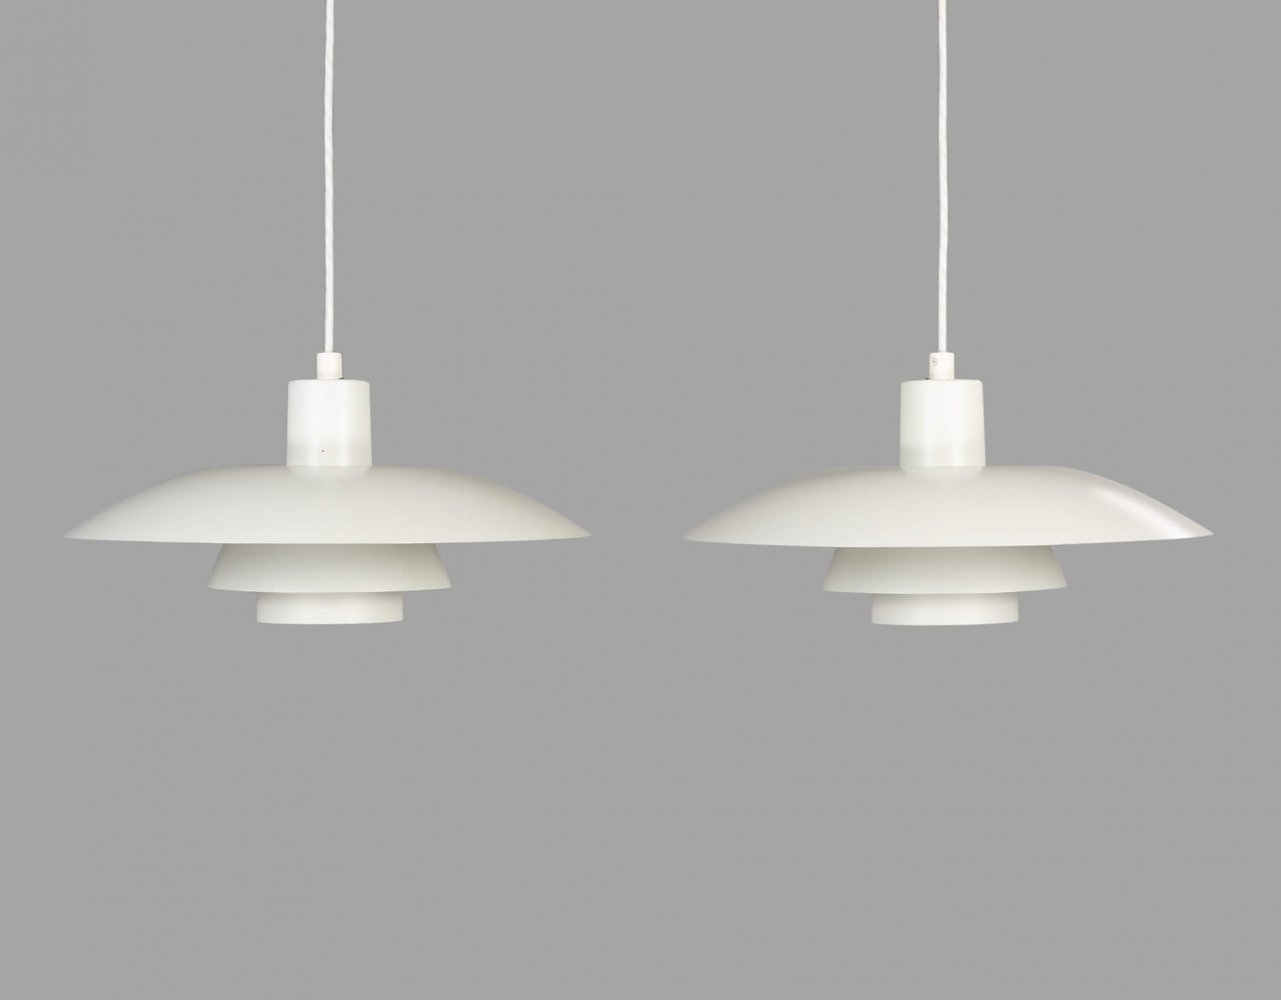 Pair of white PH 4/3 lamps by Poul Henningsen for Louis Poulsen, 1960s